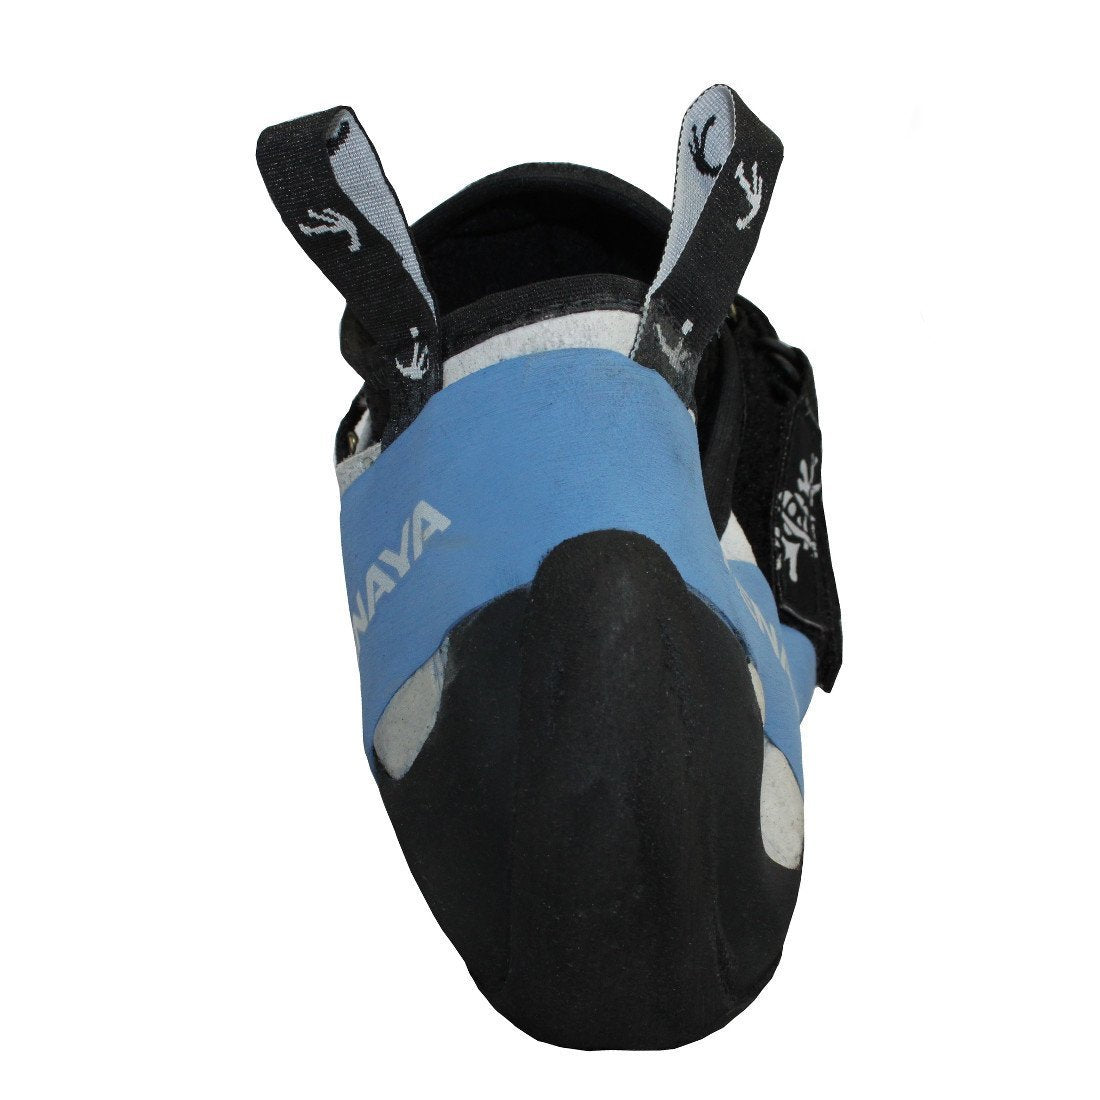 Tenaya Oasi climbing shoe, rear view showing the heel